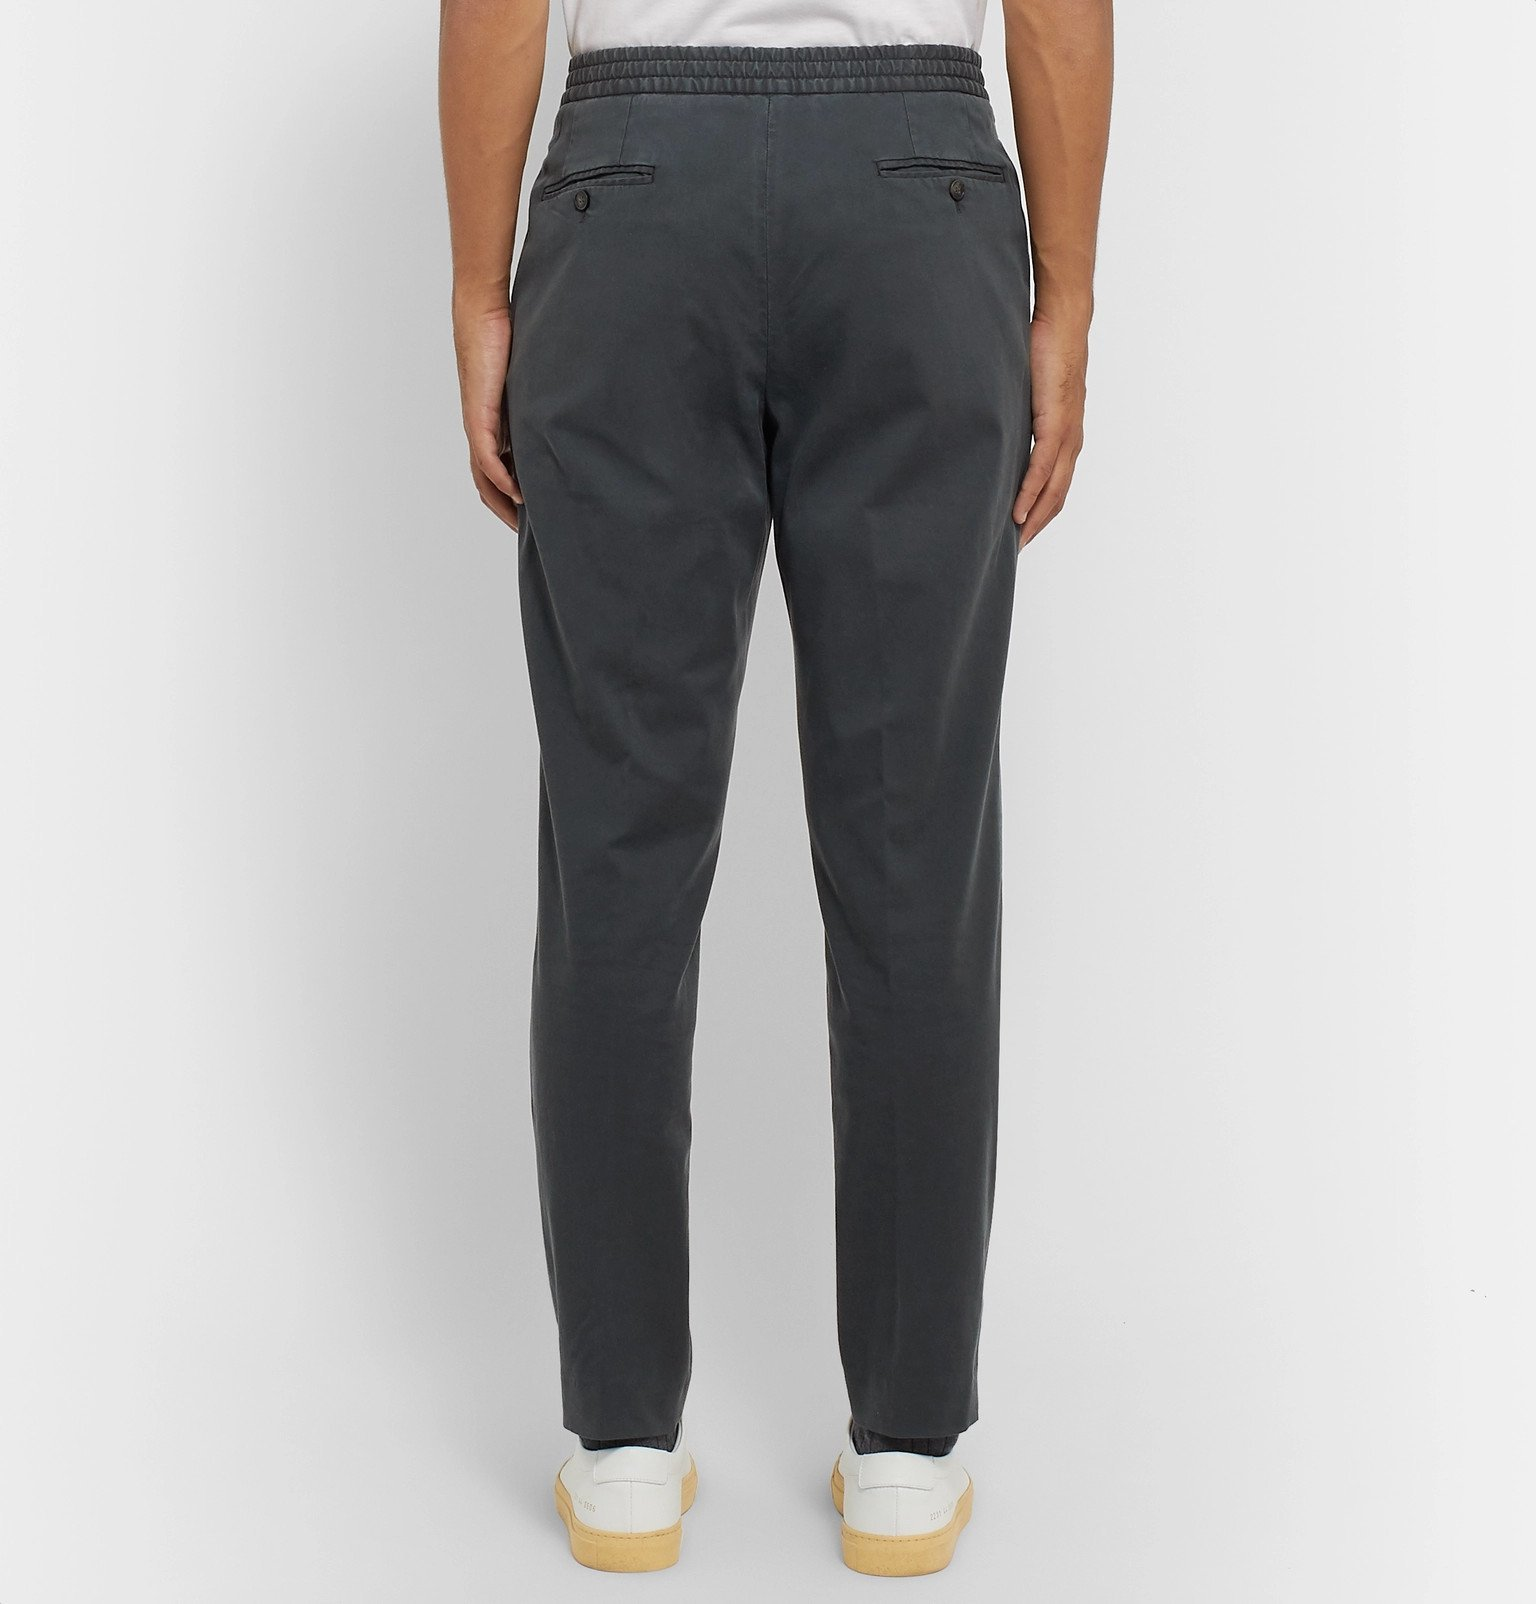 Officine Generale - Drew Tapered Pleated Garment-Dyed Lyocell and Cotton-Blend Drawstring Trousers - Gray